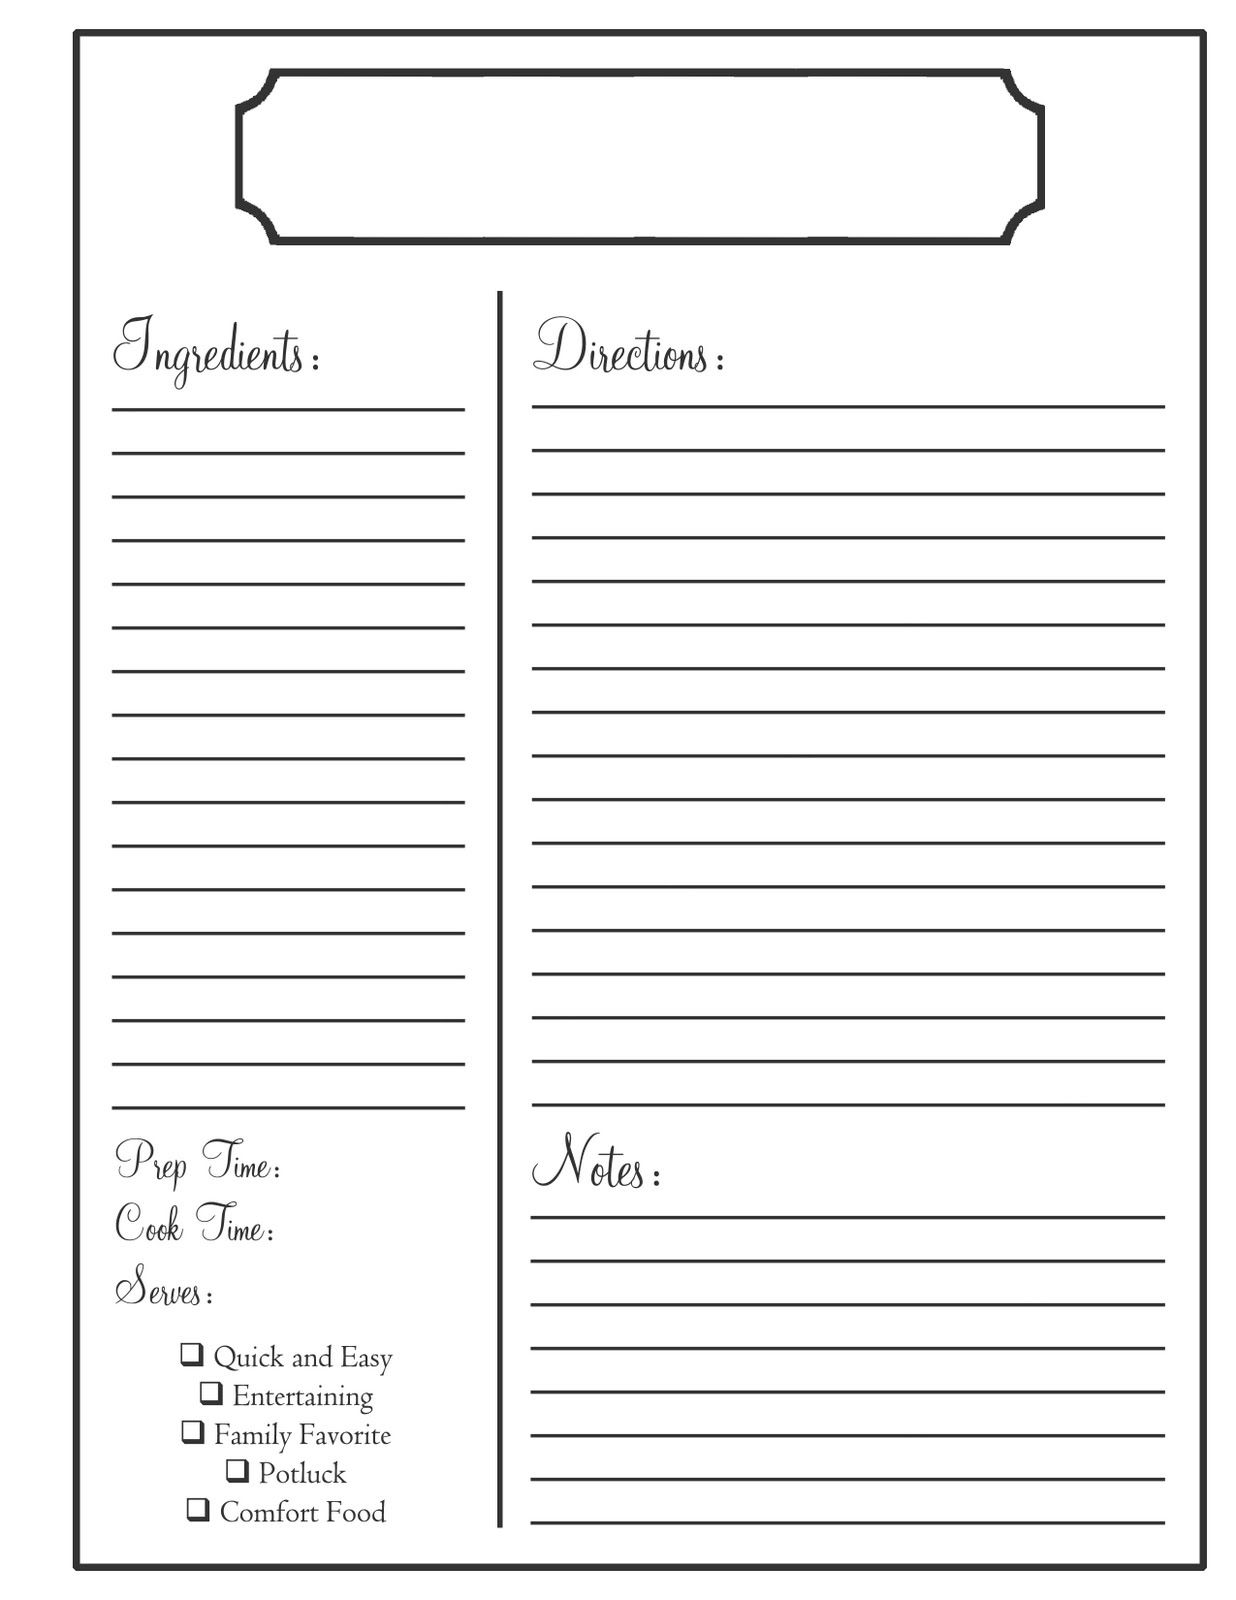 Joelle Charming Ojai And Santa Barbara Wedding Planner Recipe Cards Template Recipe Book Diy Recipe Template For Word